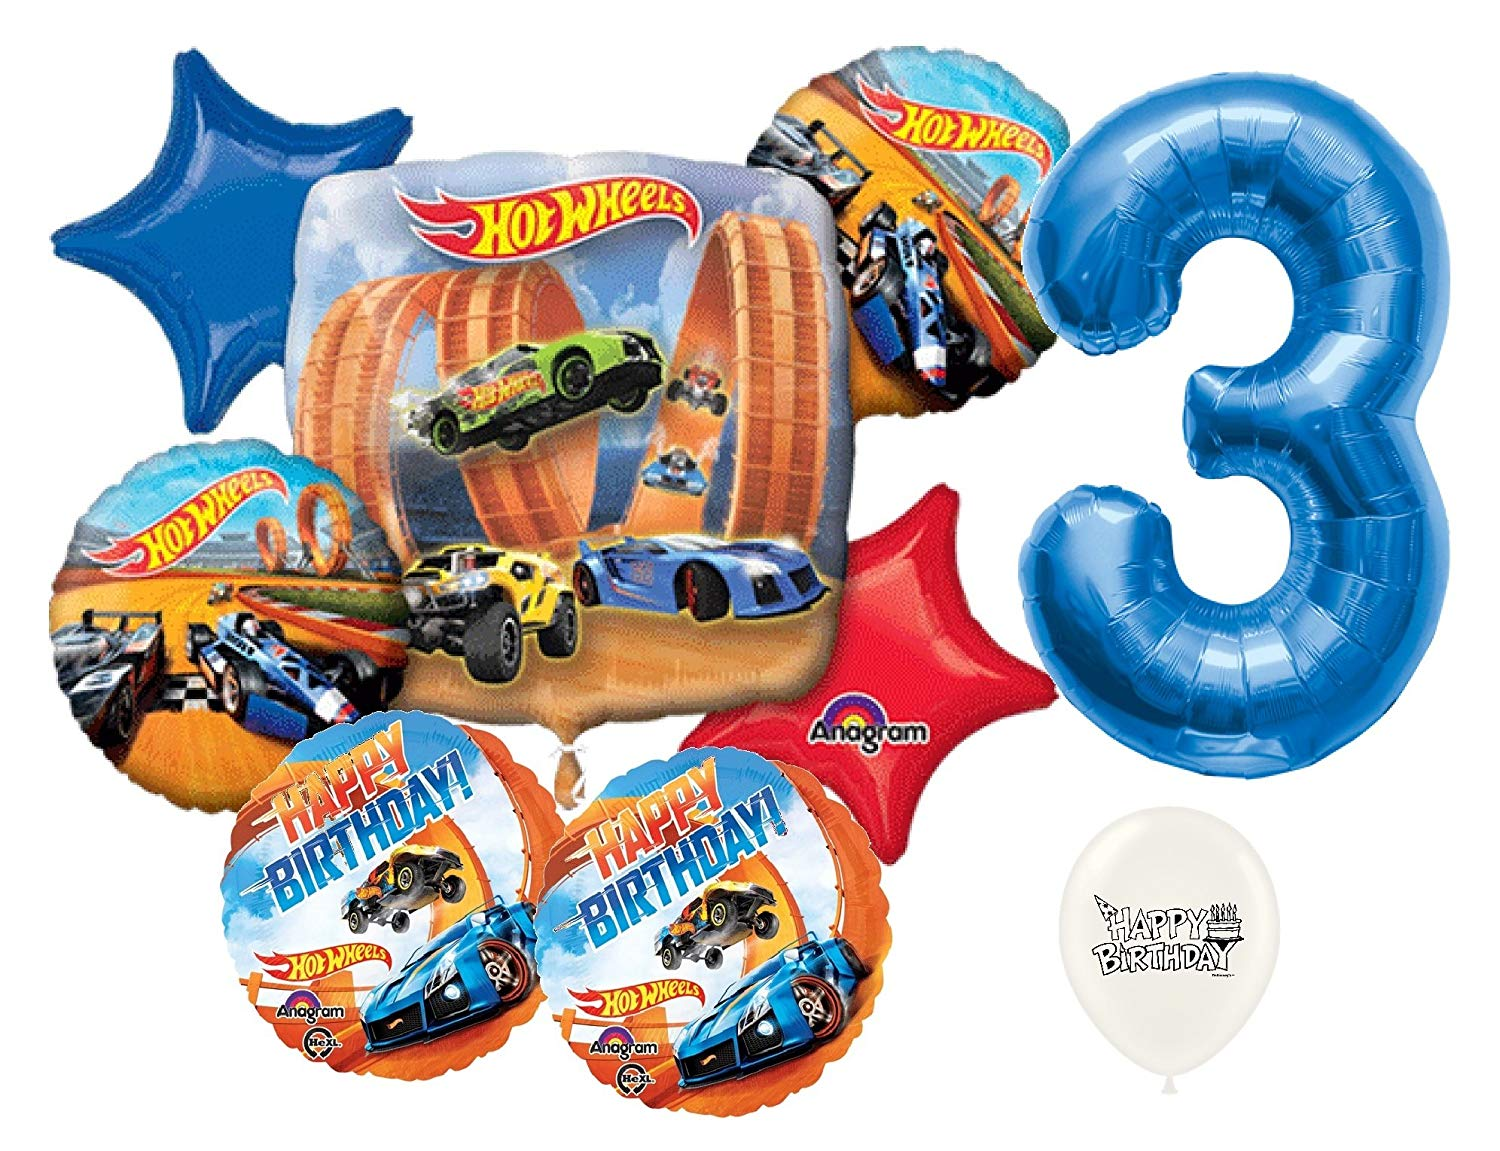 Get Quotations Blue Number 3rd Birthday Hot Wheels Racing Cars Party Decorations Balloon Bouquet Bundle